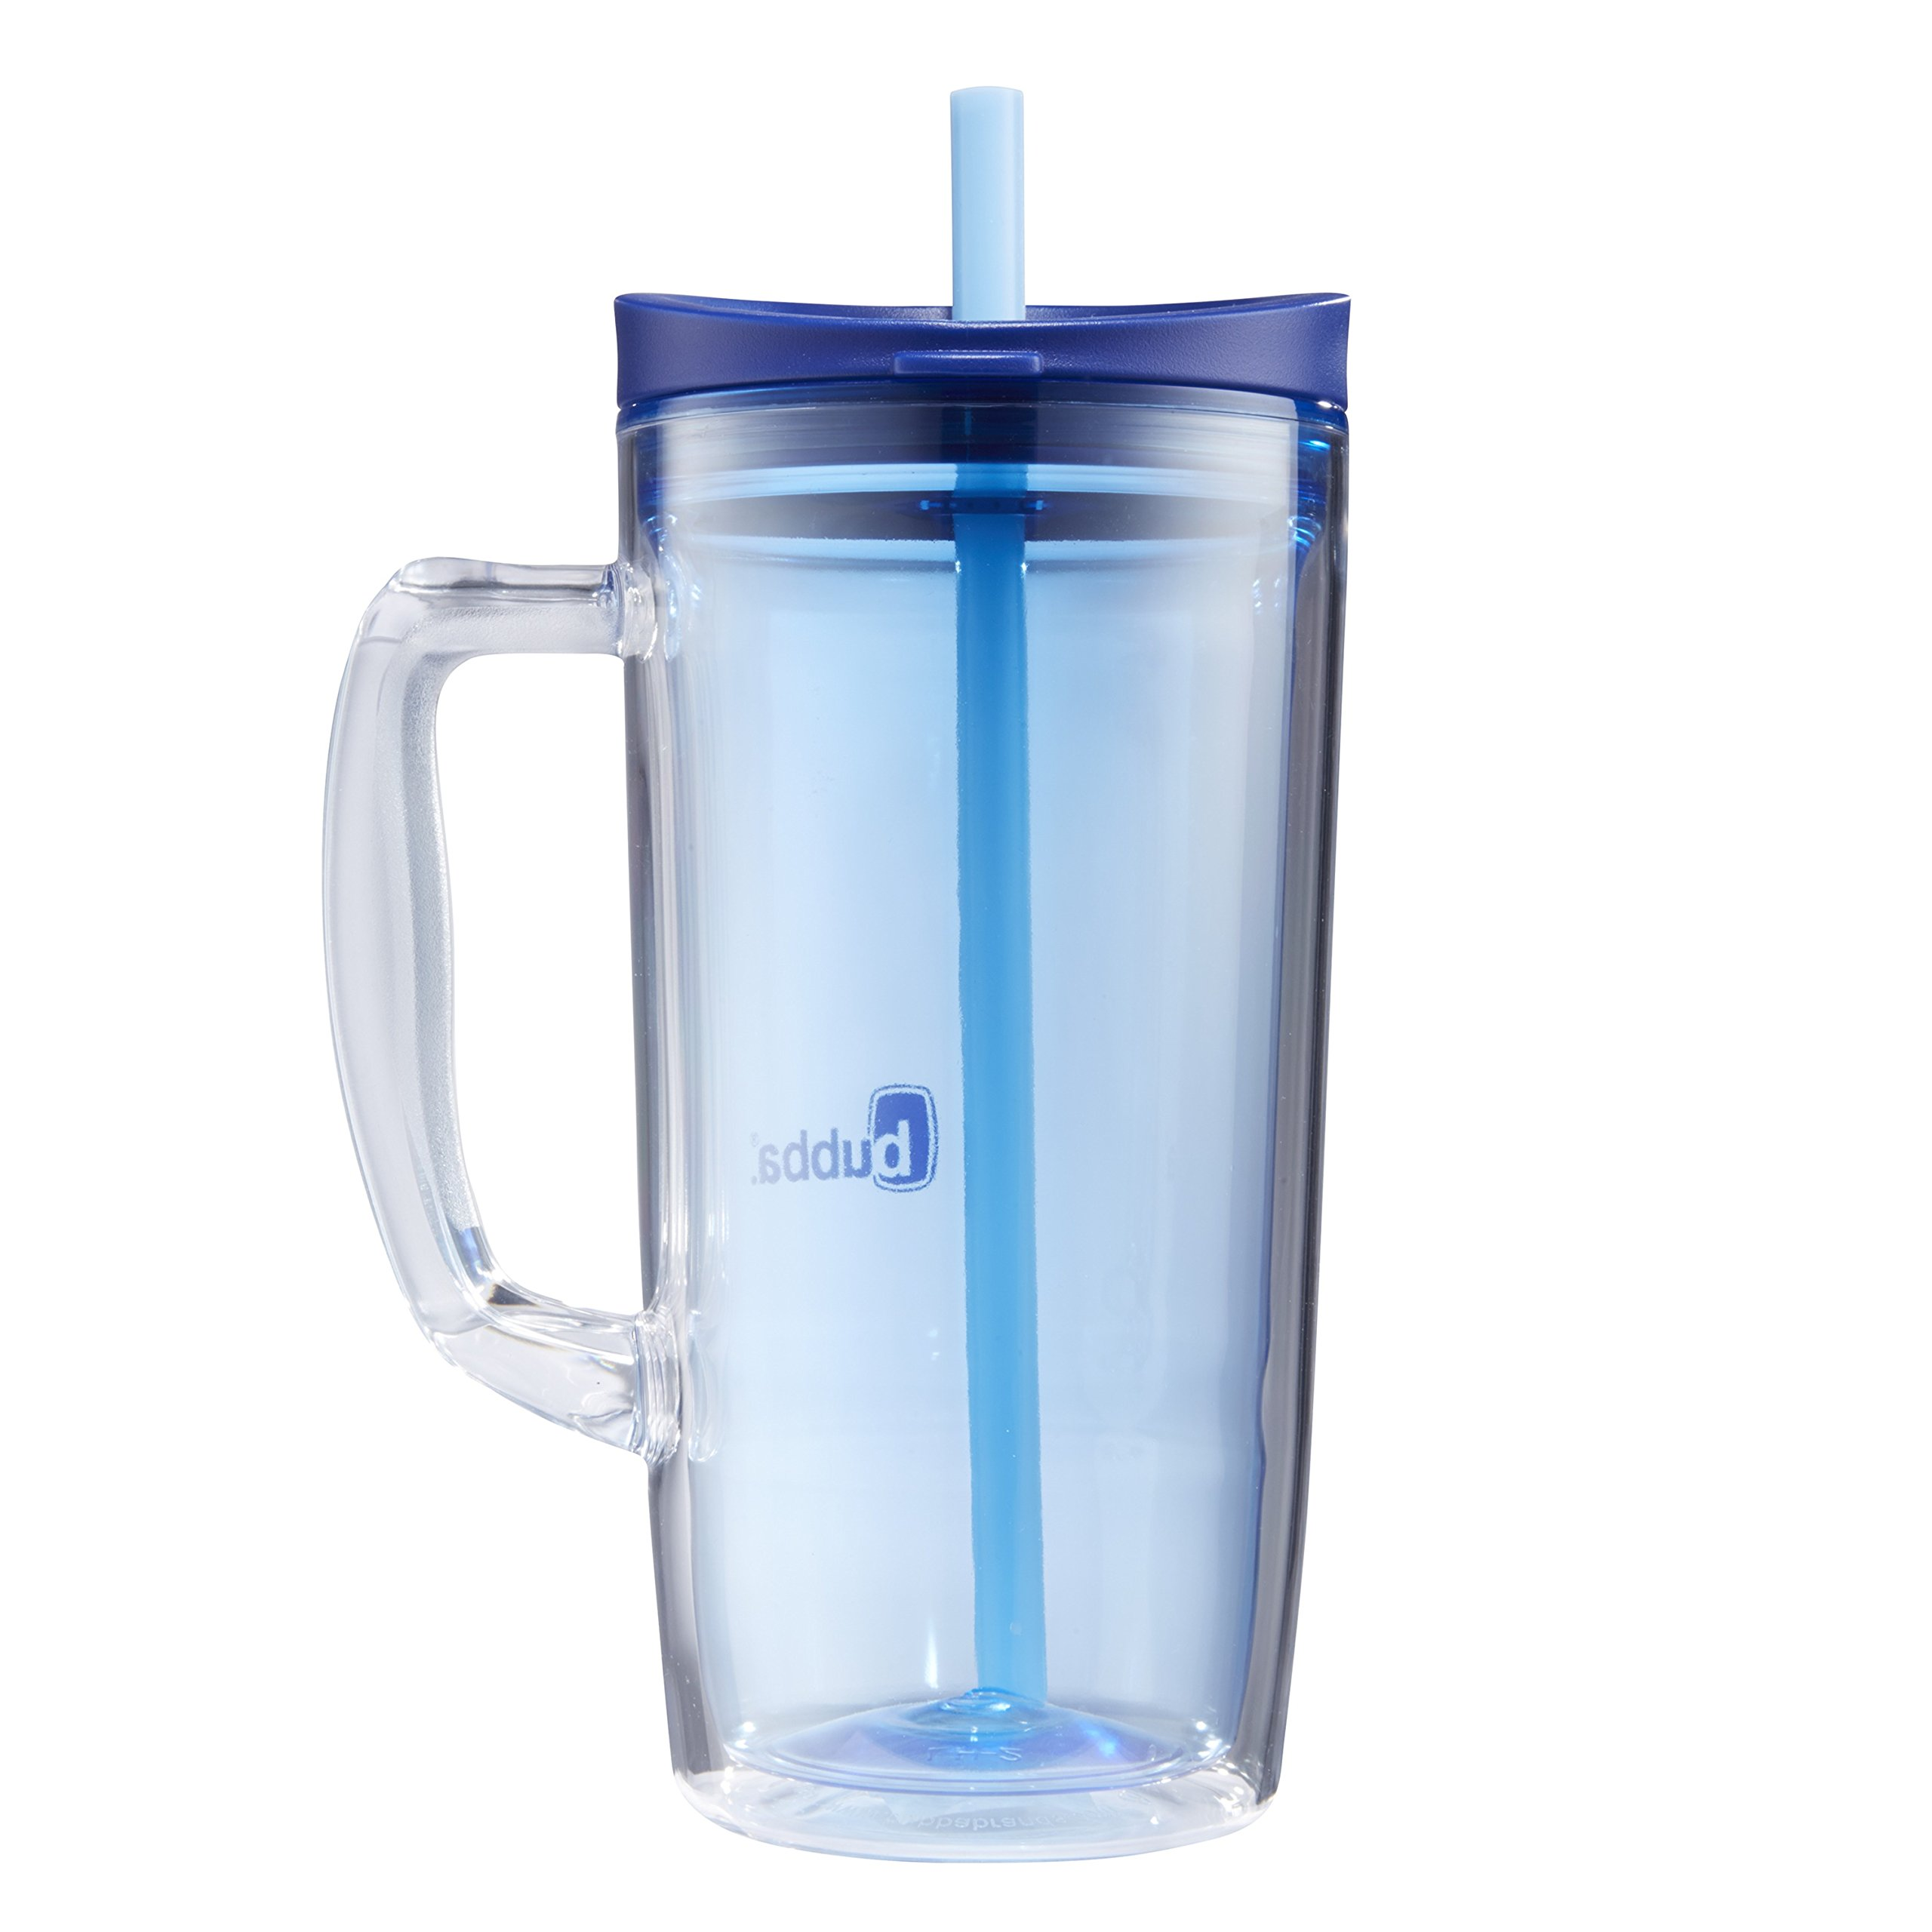 Bubba Envy Double Wall Insulated Straw Tumbler with Handle, 32 oz, Blue by BUBBA BRANDS (Image #7)